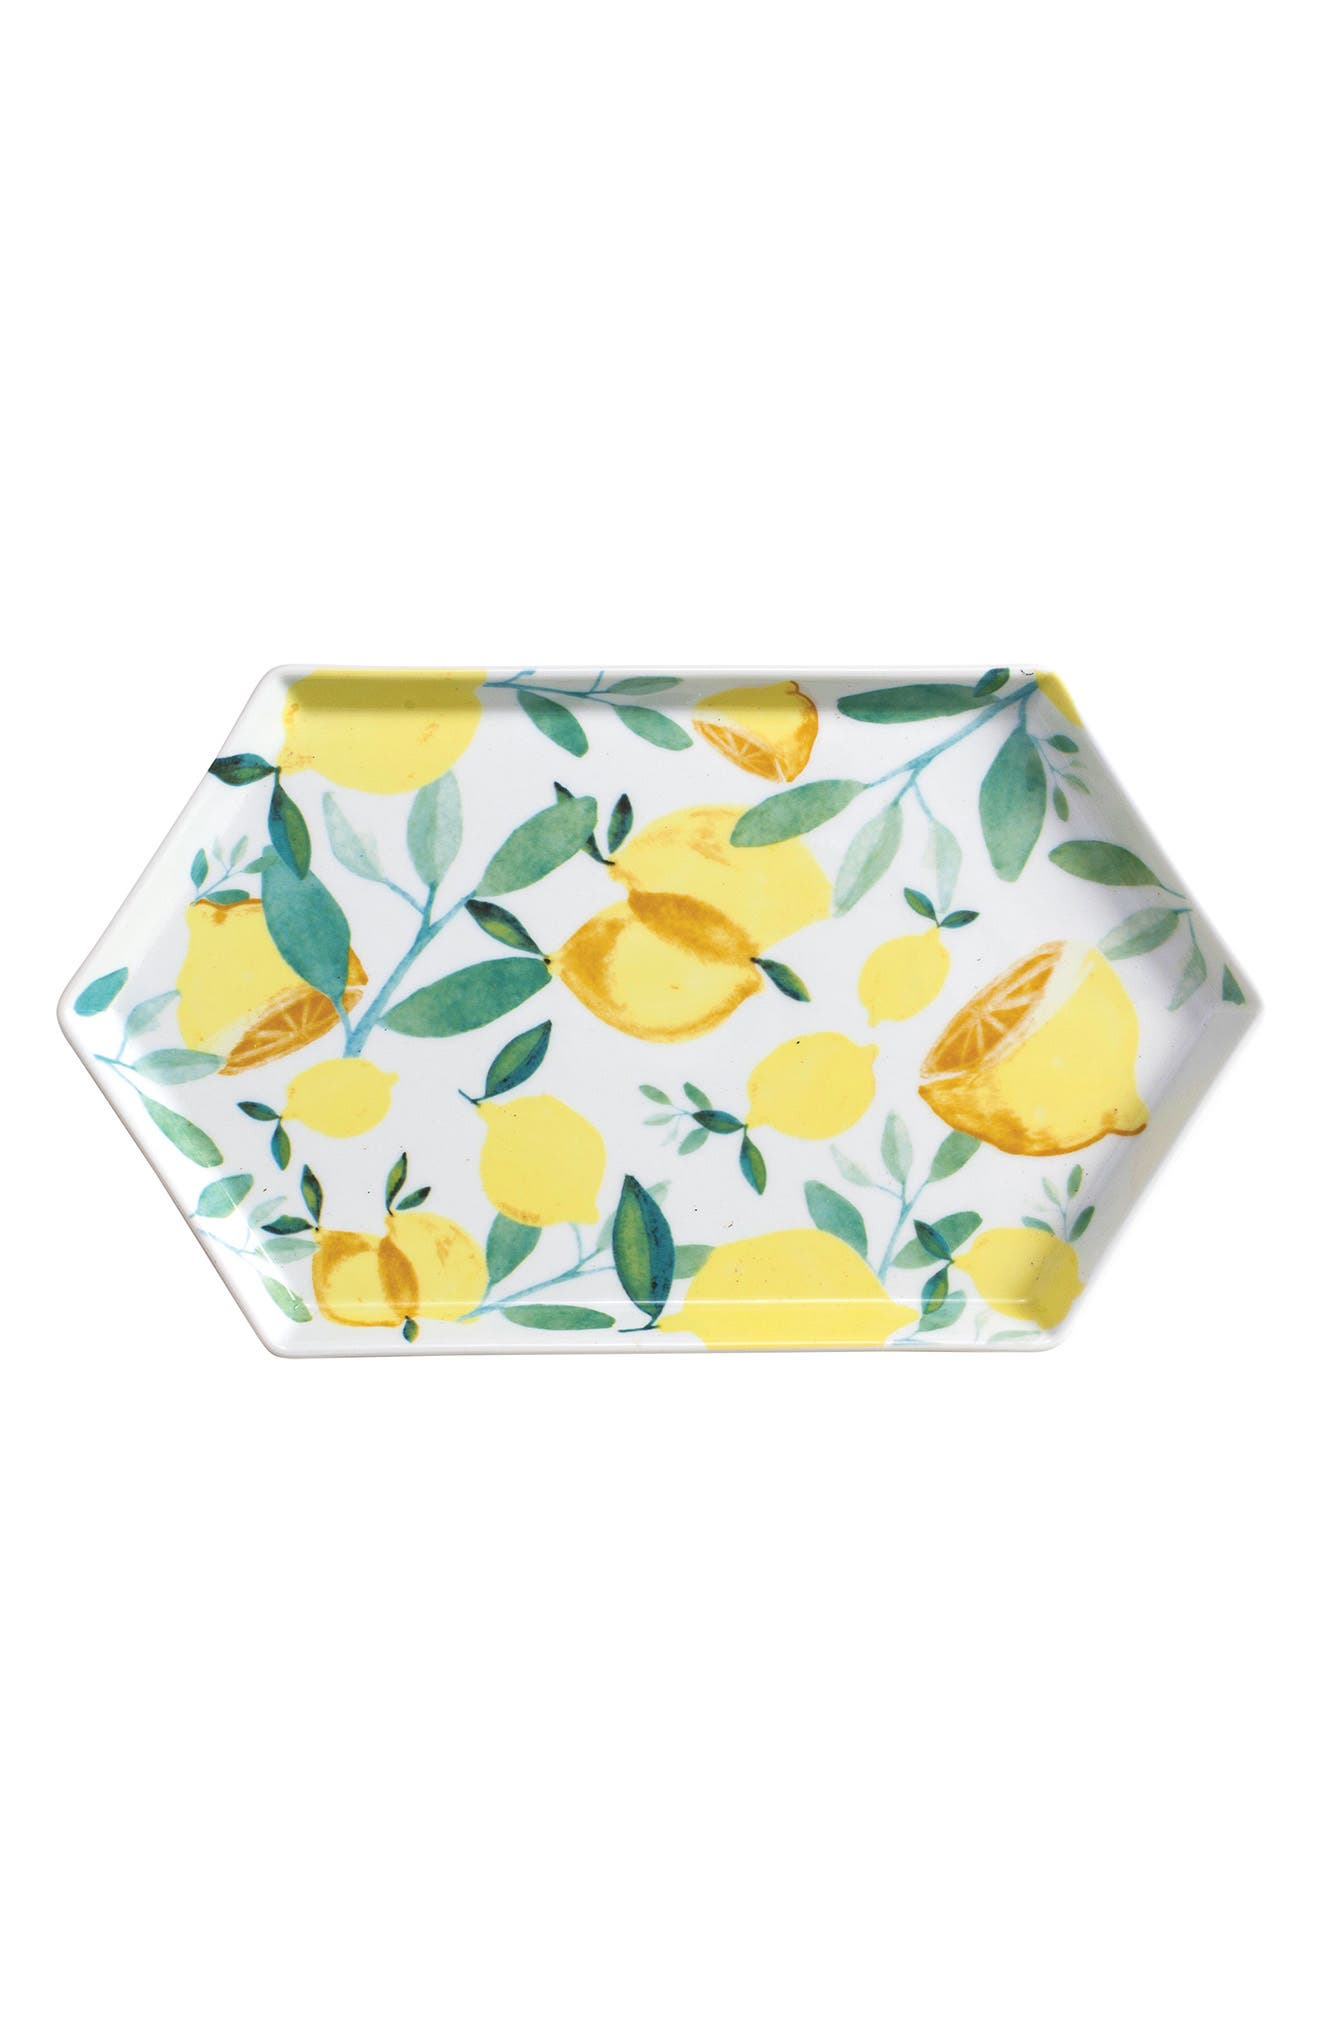 Lemon Hexagon Tray,                             Main thumbnail 1, color,                             Yellow Multi